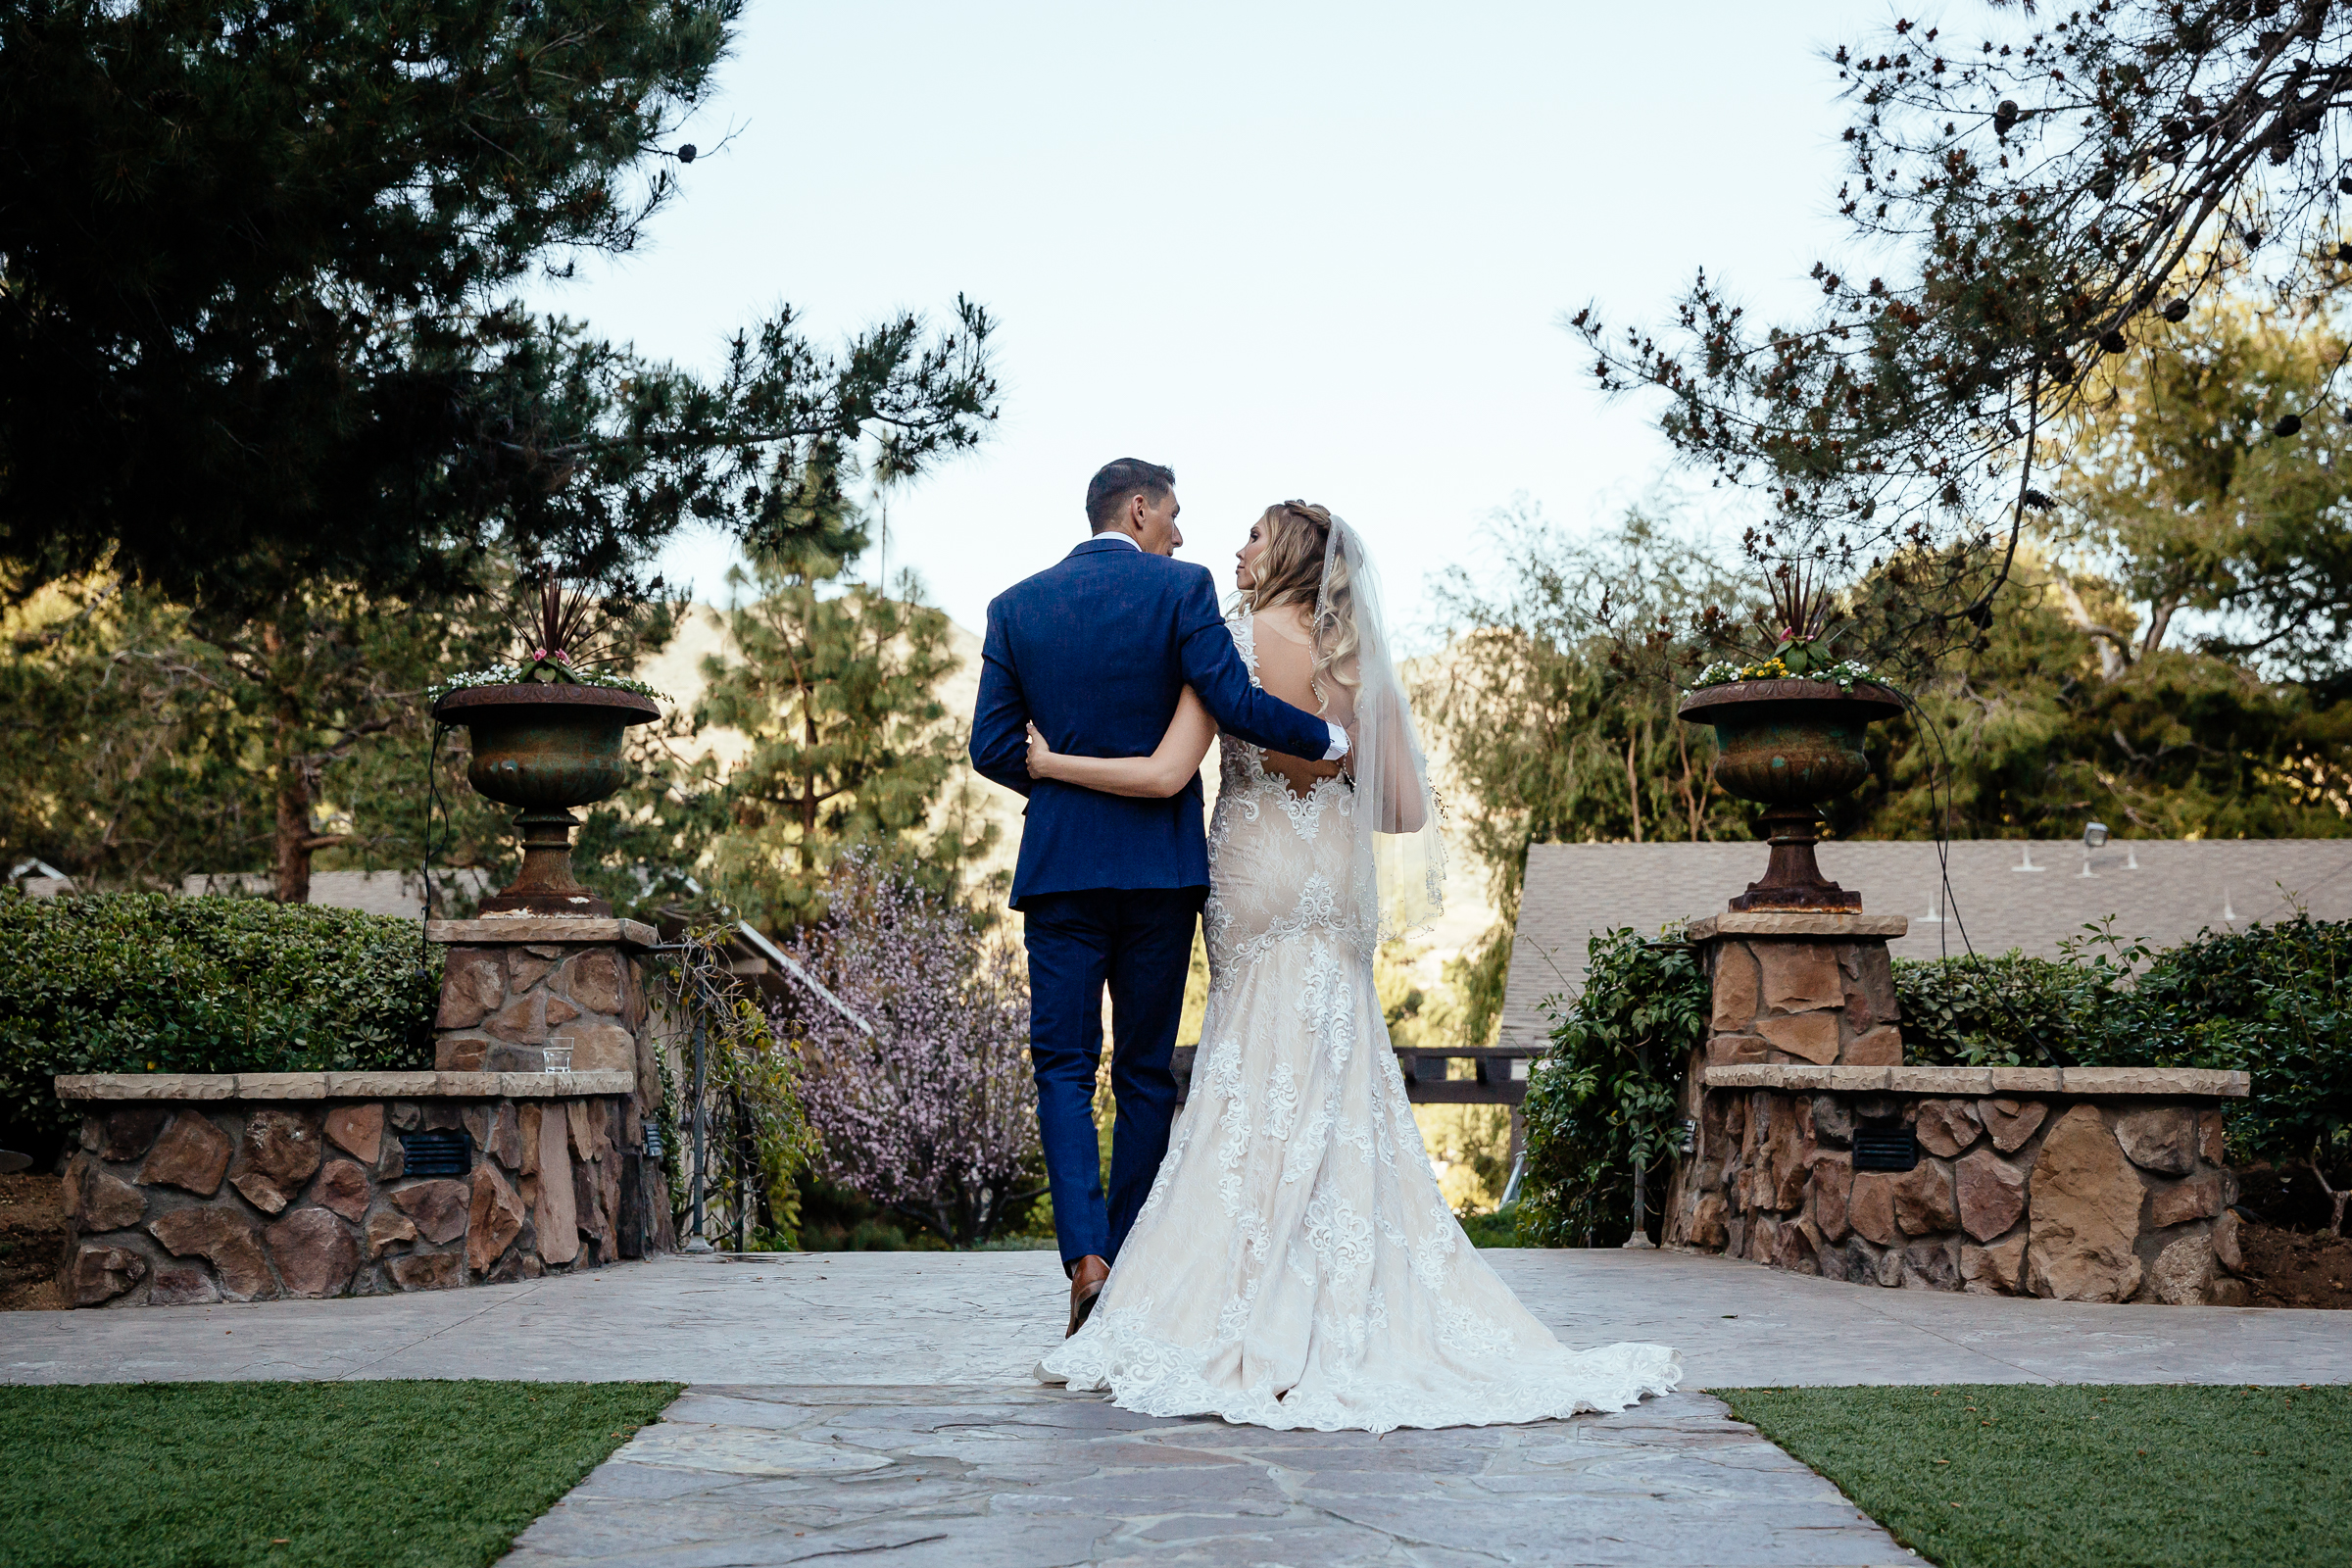 0044_CHARLIE_&_JIM_LEAF_WEDDING_PHOTOGRAPHY_PALA_MESA_RESORT_2018_E79A0286.JPG